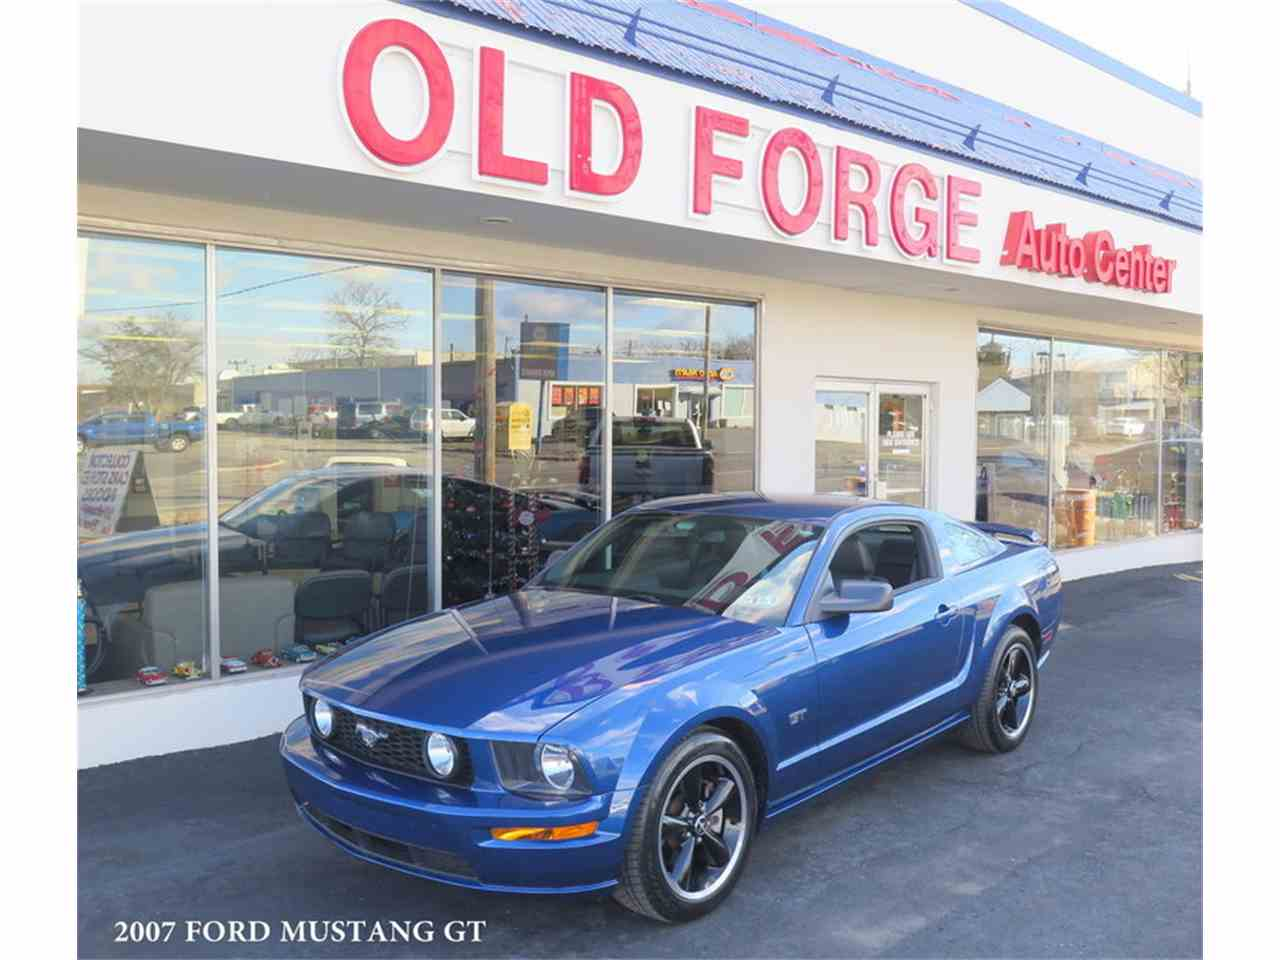 2007 Ford Mustang GT for Sale | ClassicCars.com | CC-1051041